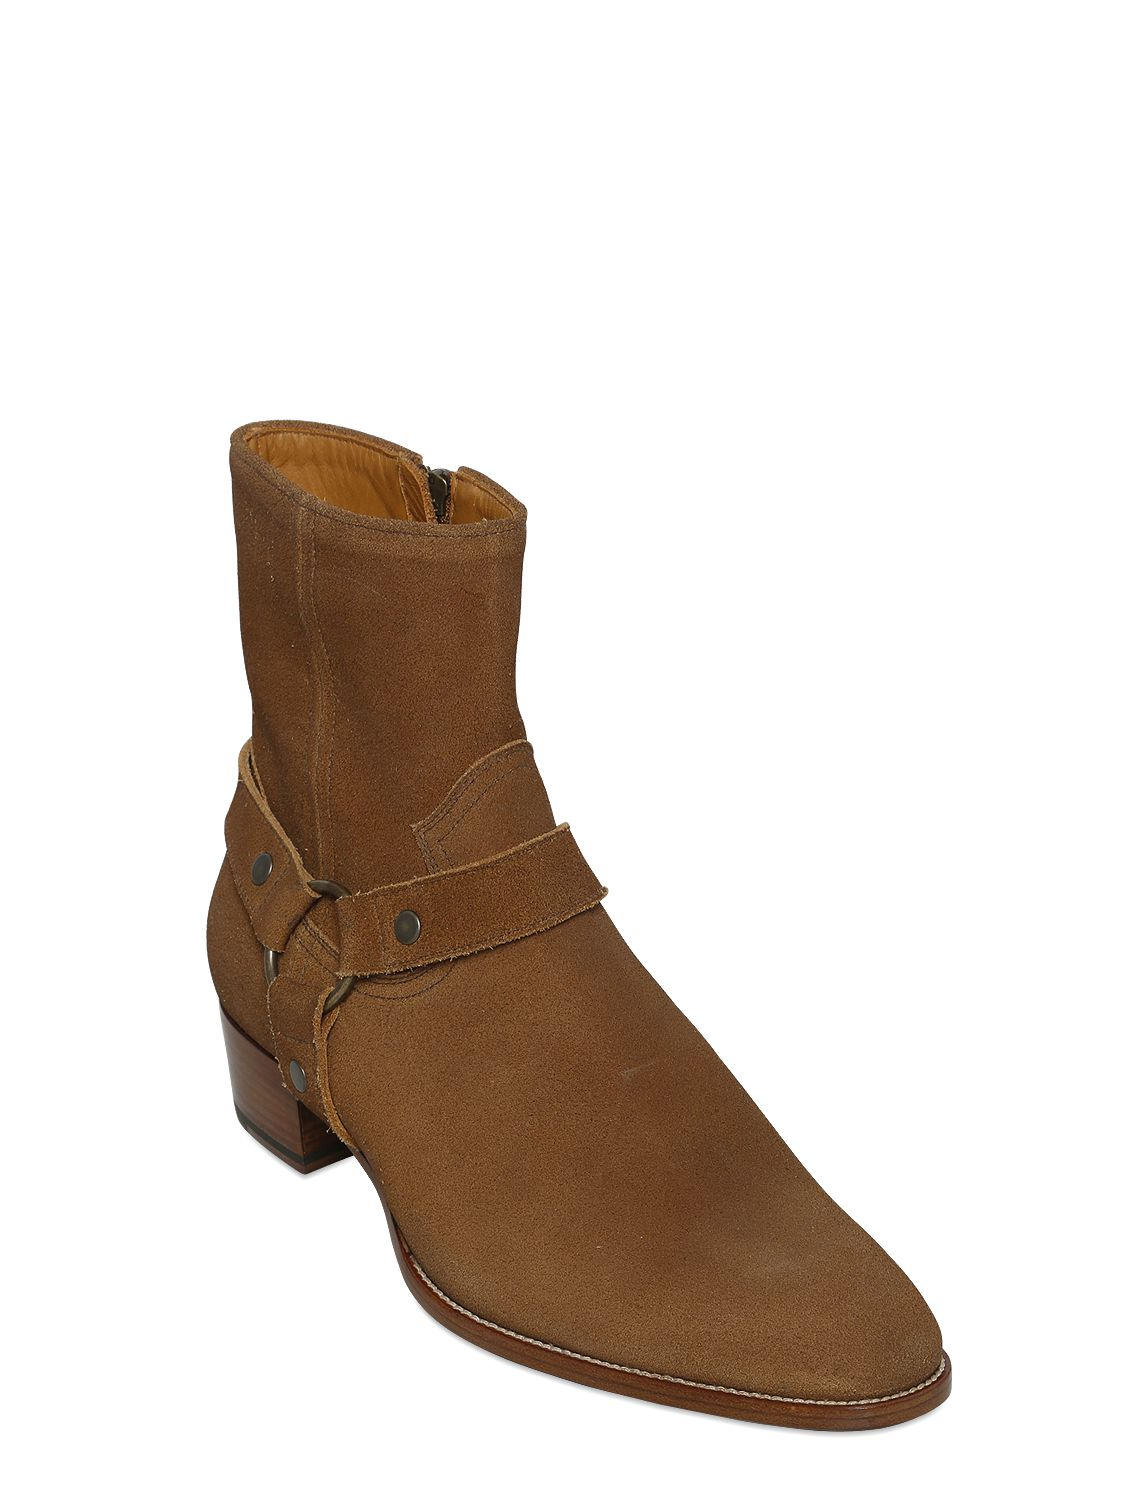 Lyst - Saint Laurent 40mm Wyatt Suede Cropped Boots in Natural for Men c0a10b8dc024